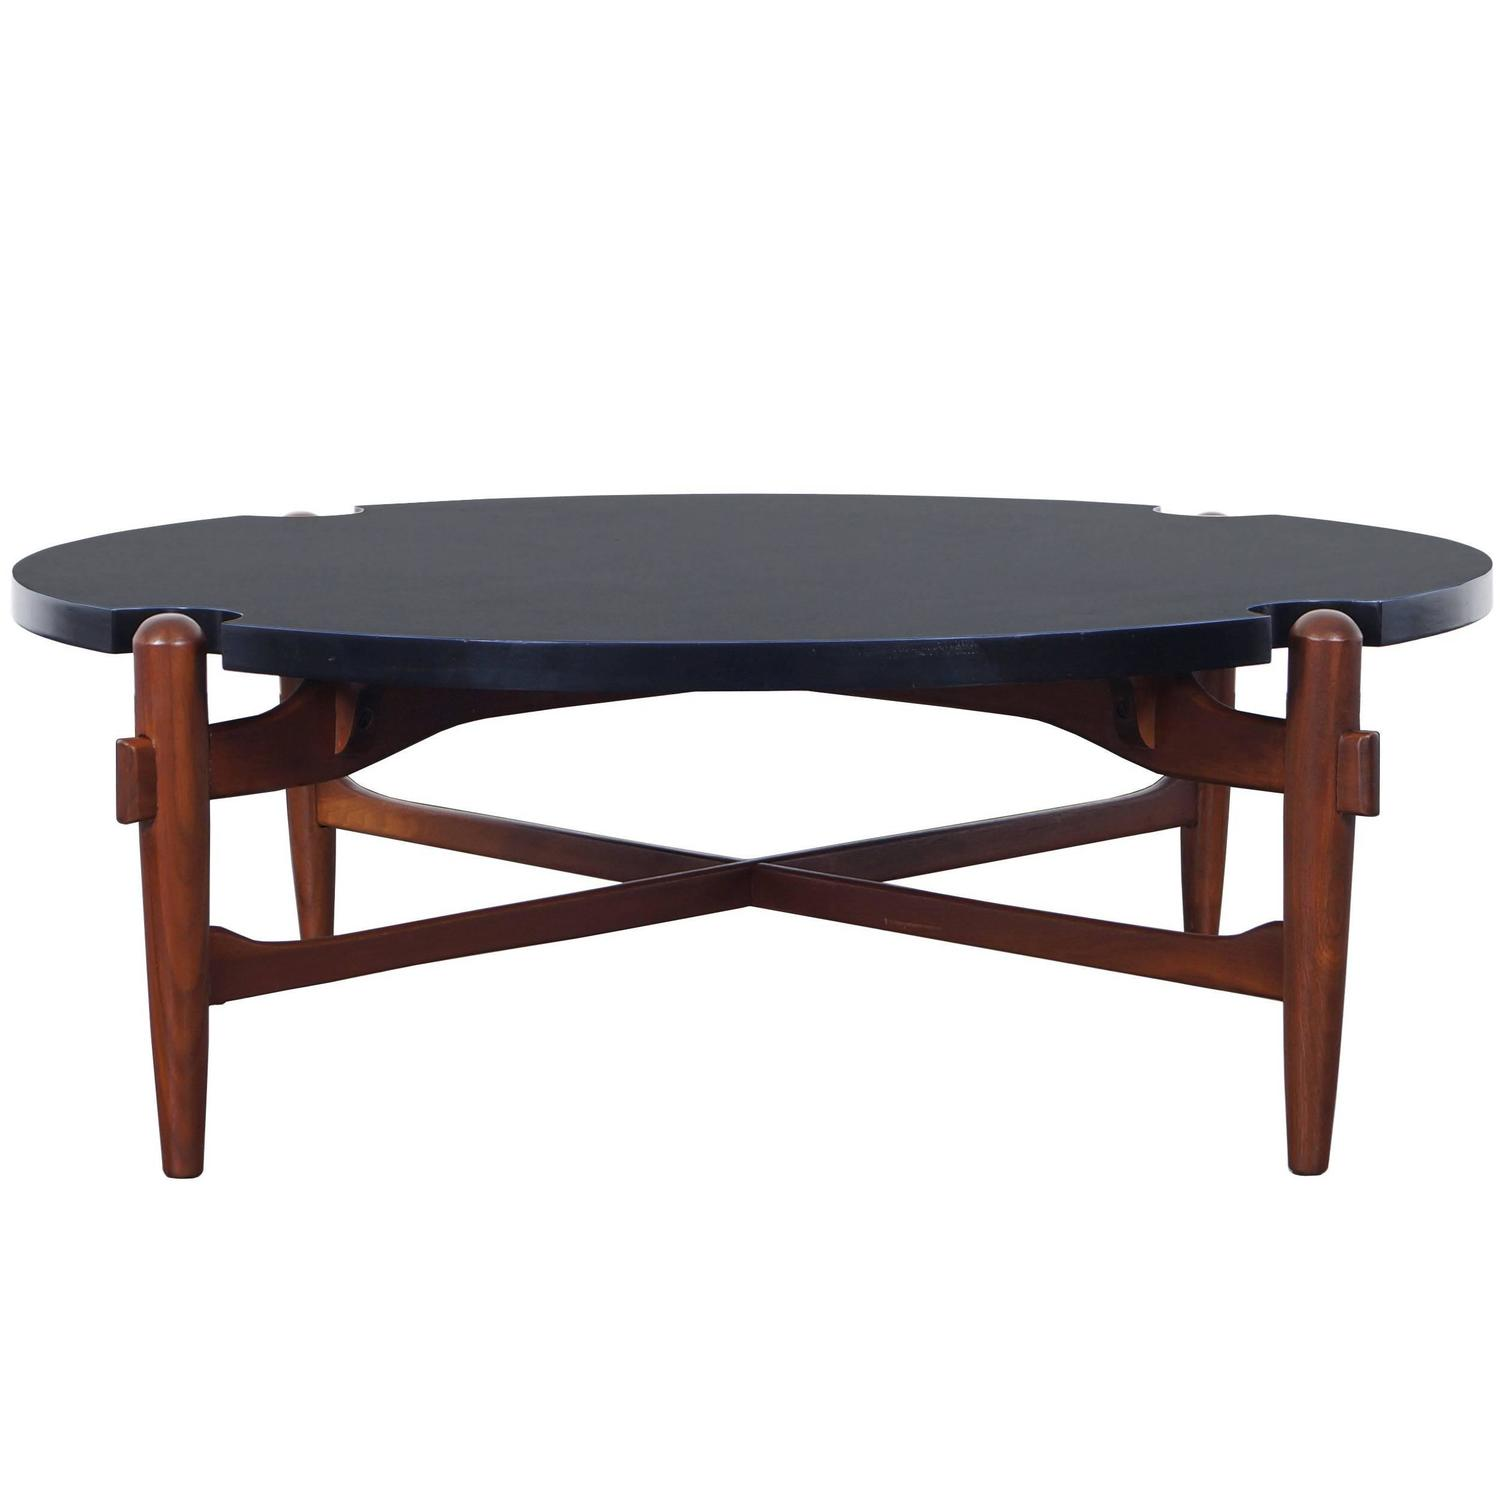 Vintage Coffee Table Attributed to Greta Grossman For Sale at 1stdibs